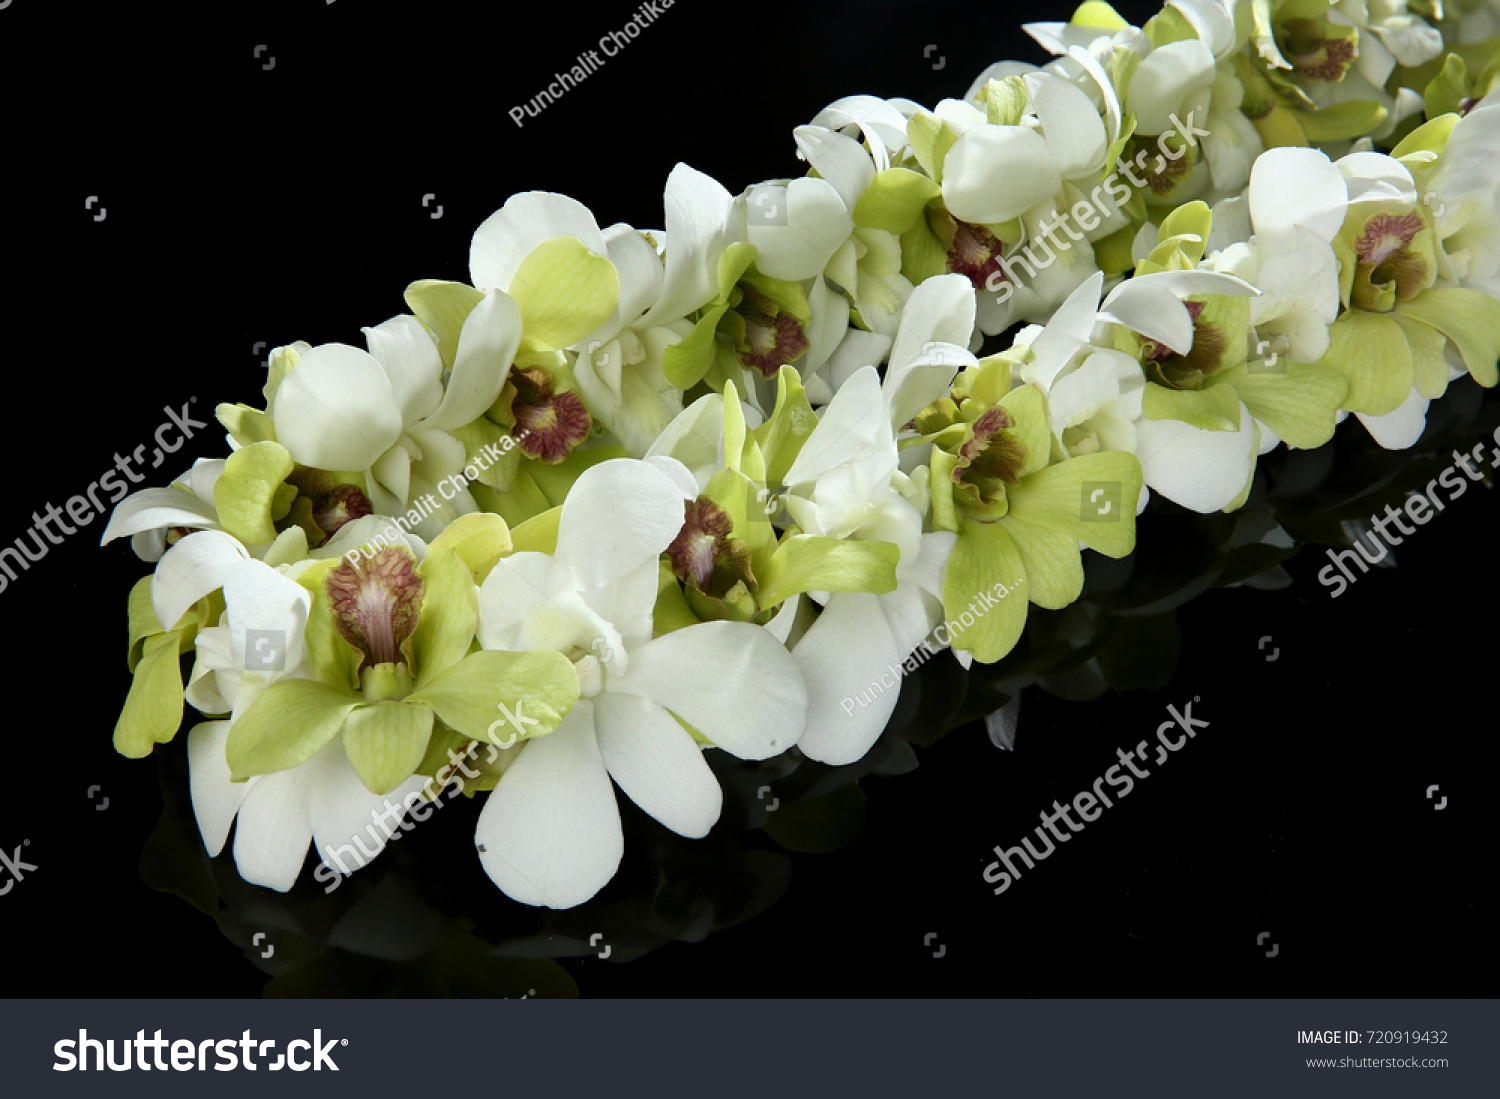 Hawaii flowers lei necklace made orchid stock photo 720919432 hawaii flowers lei necklace made from orchid flower on black background izmirmasajfo Images